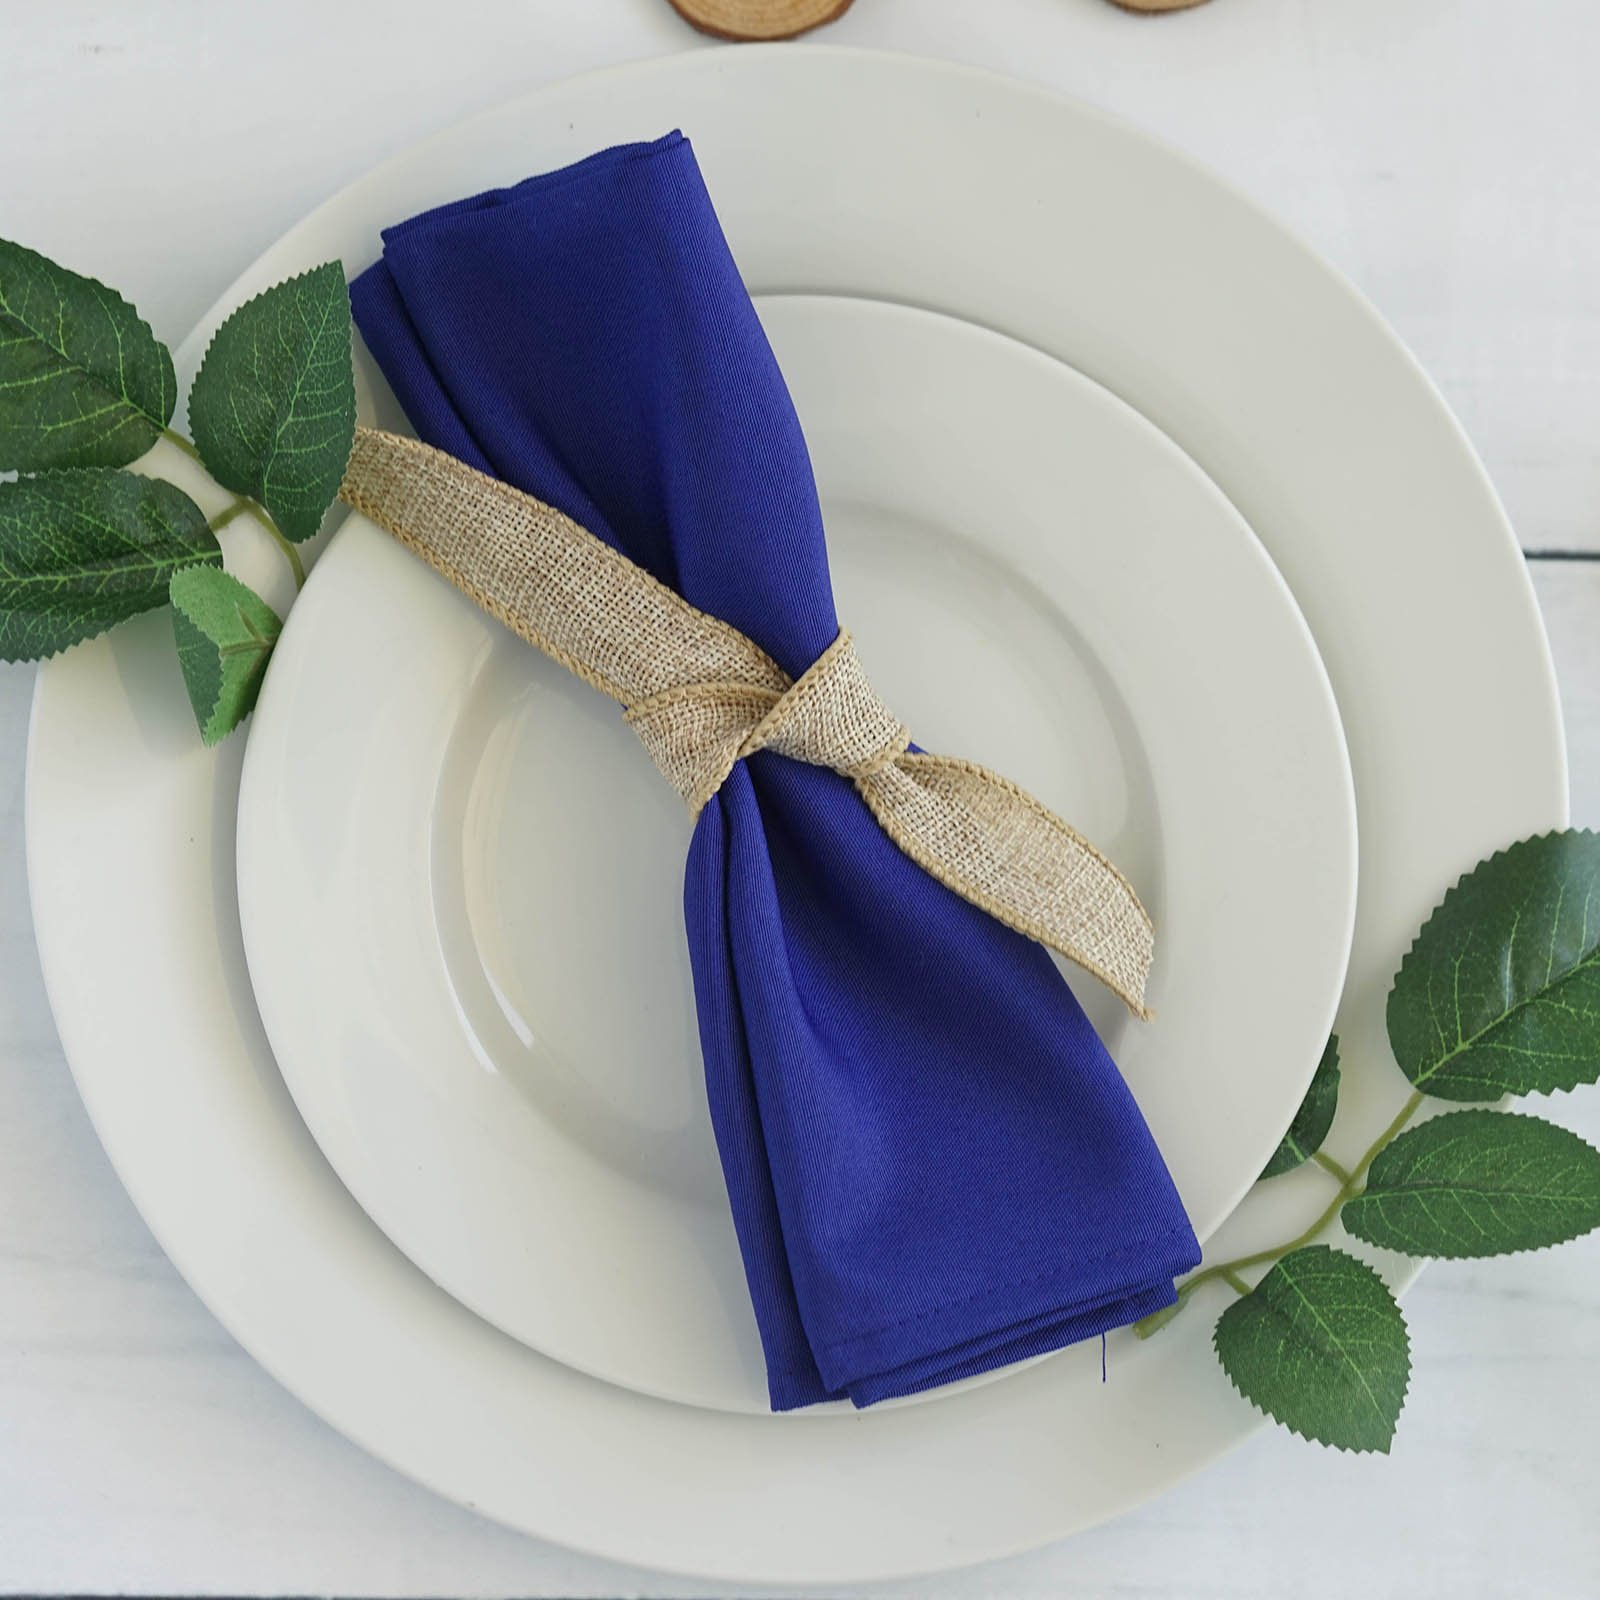 BalsaCircle 100 pcs 17-Inch Royal Blue Polyester Luncheon Napkins - for Wedding Party Reception Events Restaurant Kitchen Home